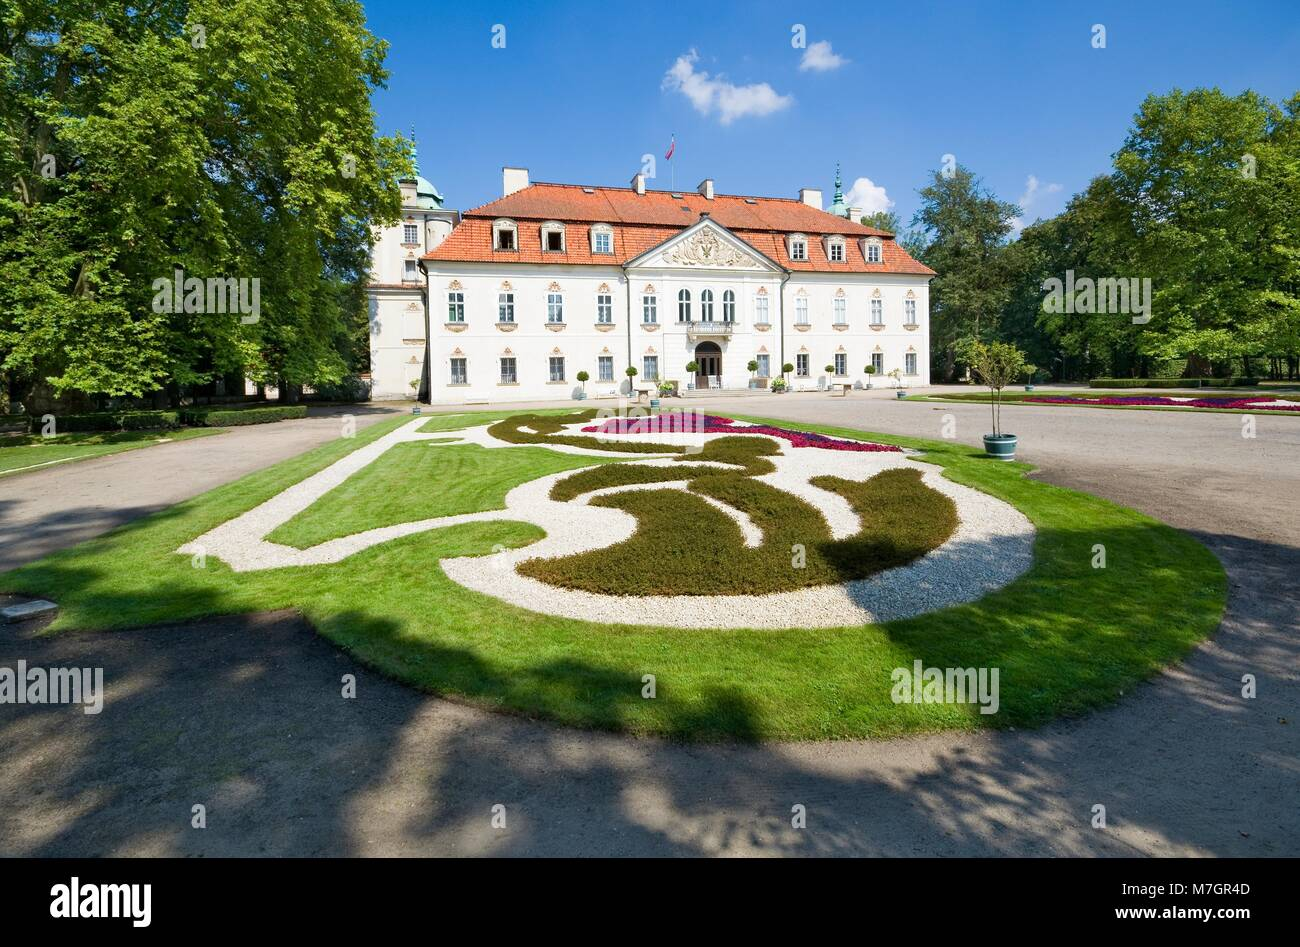 NIEBOROW, POLAND - AUGUST 20: Aristocratic Baroque palace surrounded by a French-style garden on August 20, 2016 - Stock Image